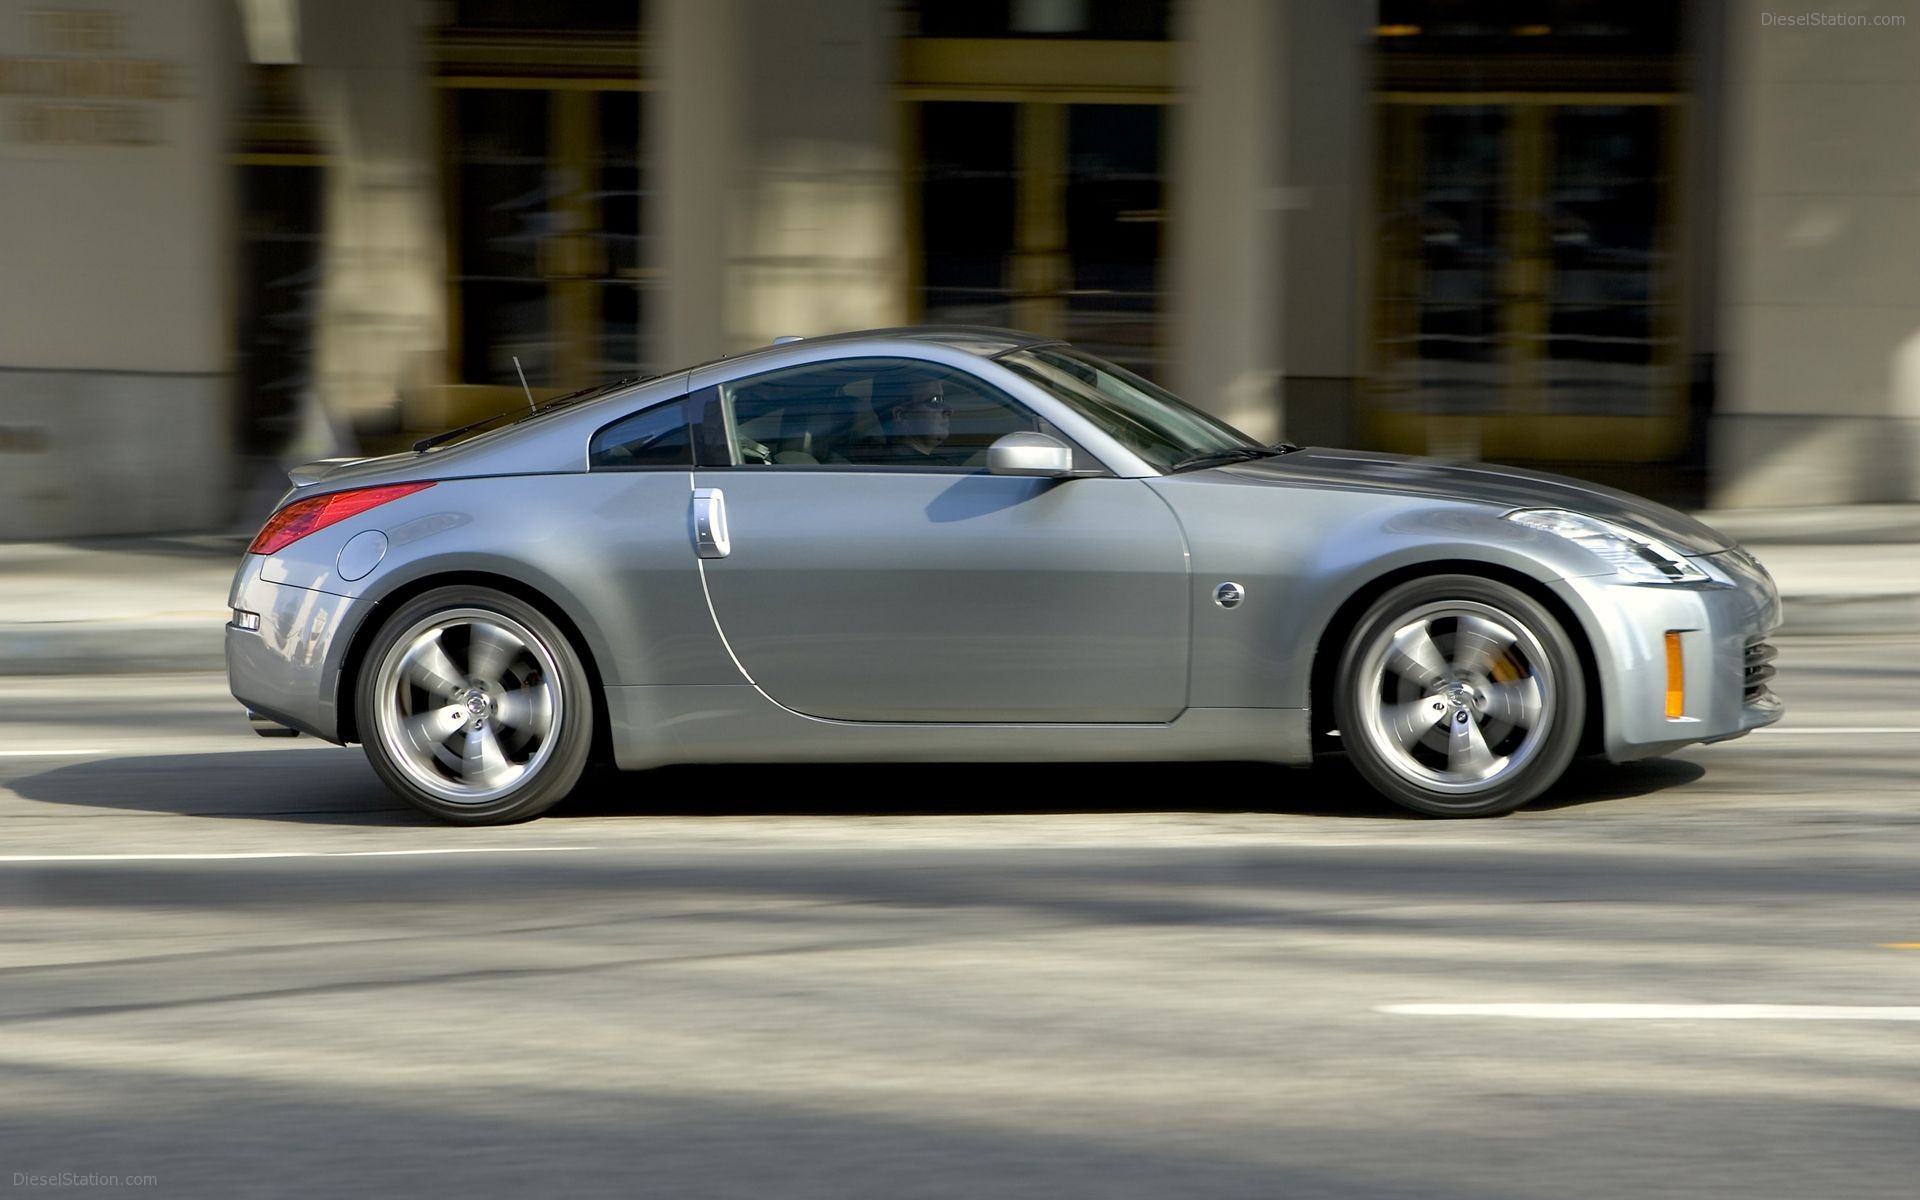 2005 Nissan 350Z Roadster Convertible 2-door